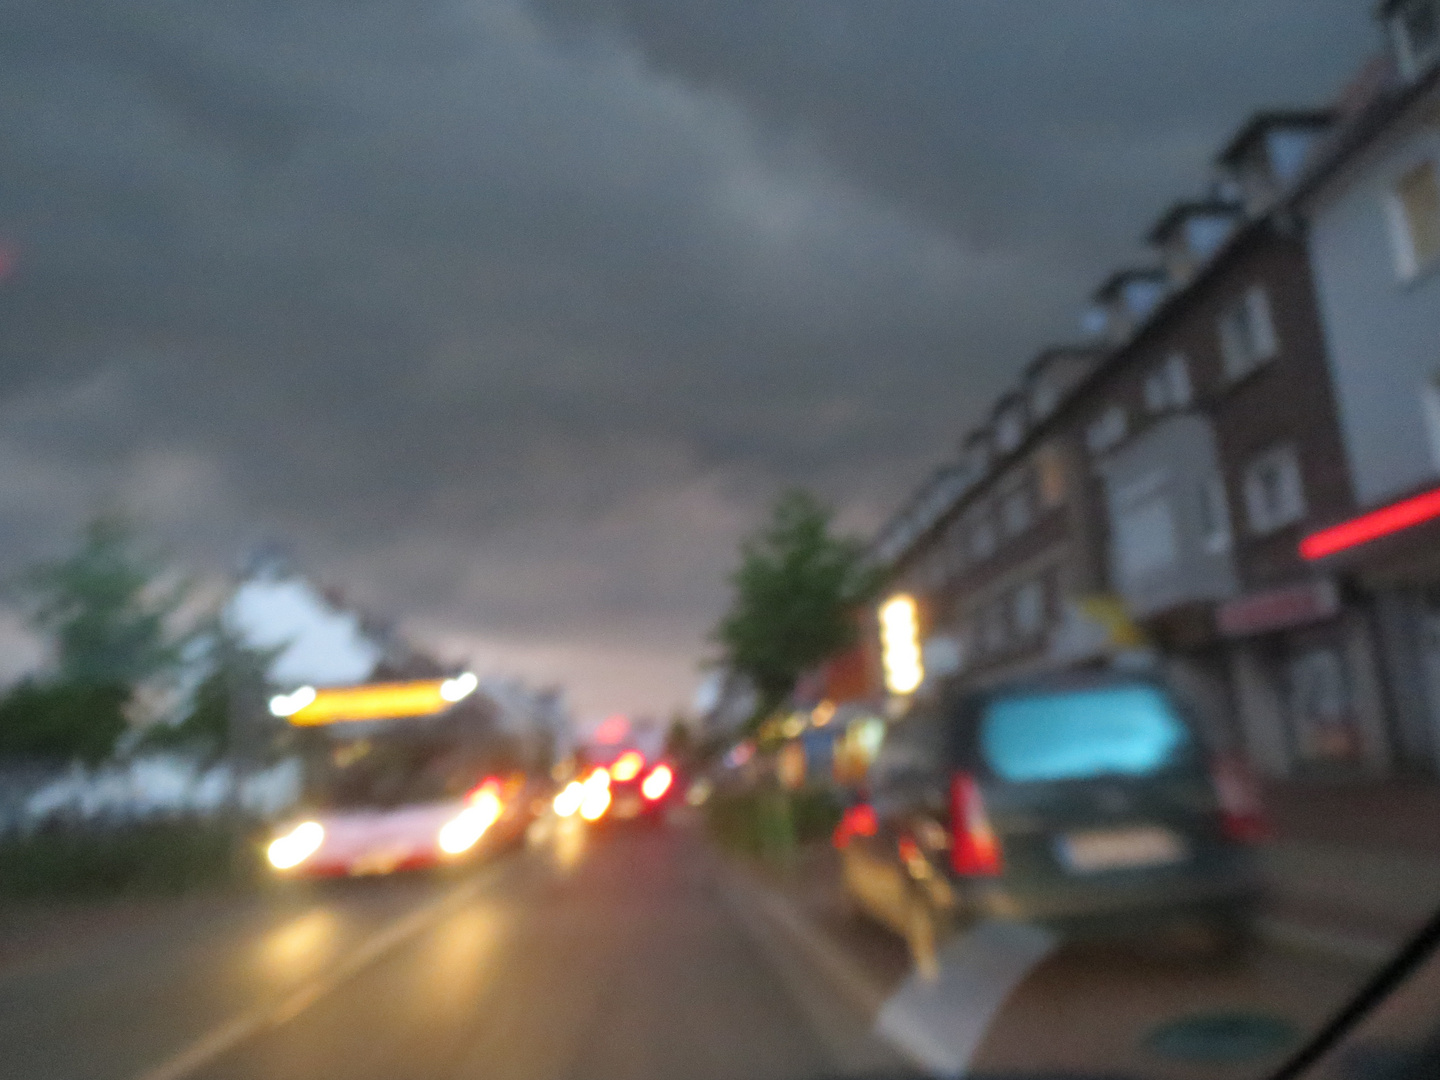 Dunkle Wolke